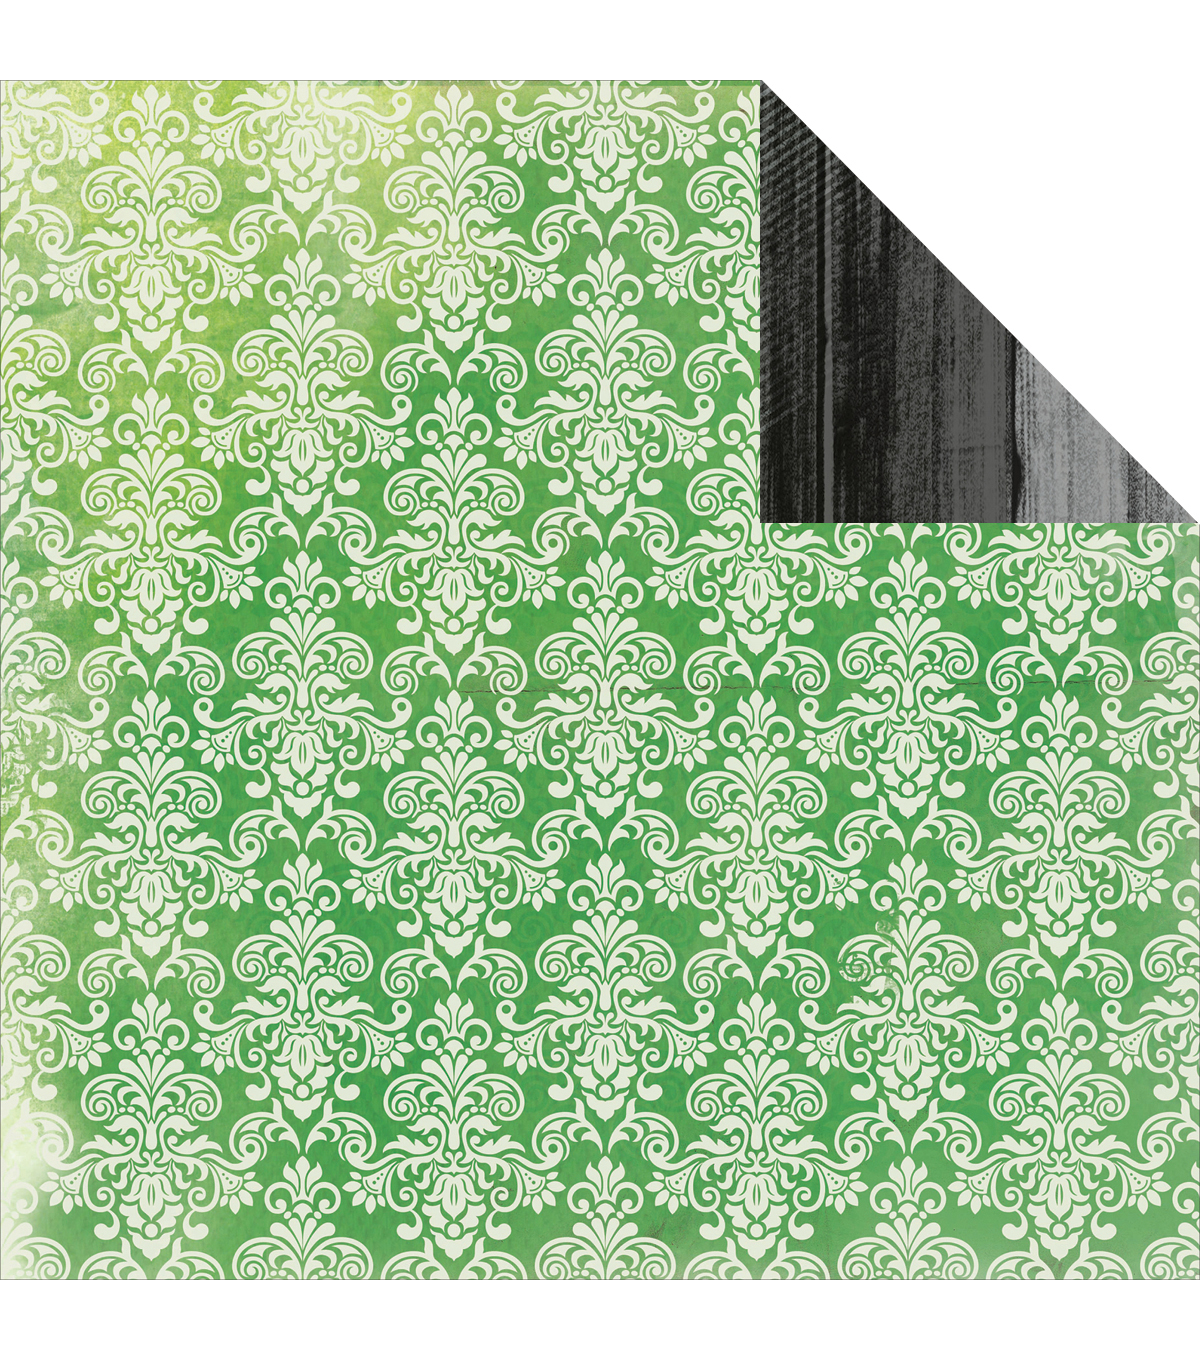 Kaisercraft Limelight Double-Sided Cardstock Paper Vibrant